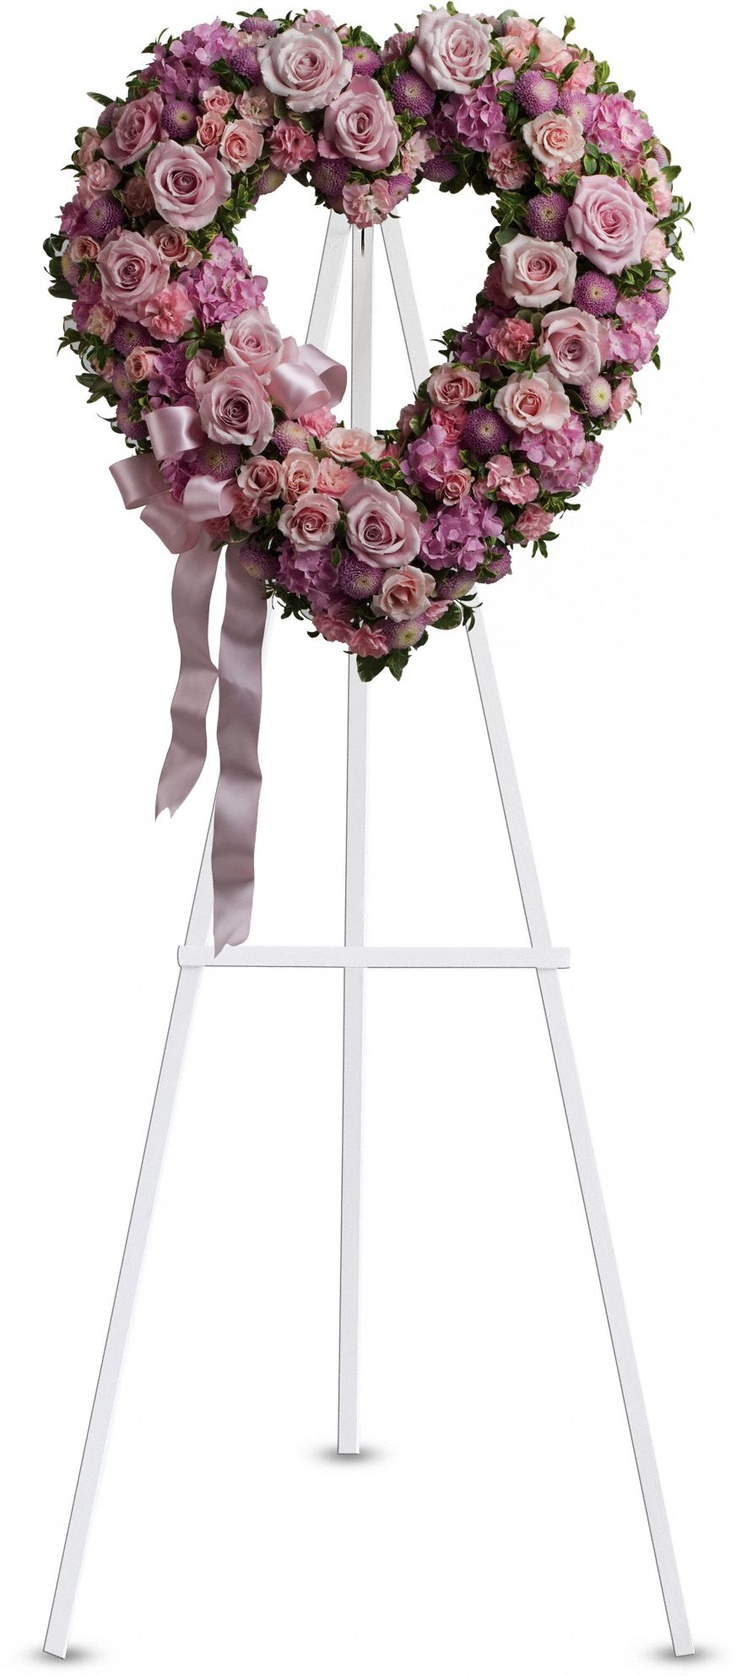 10 Best Sympathy Arrangements Images On Pinterest Funeral Flowers